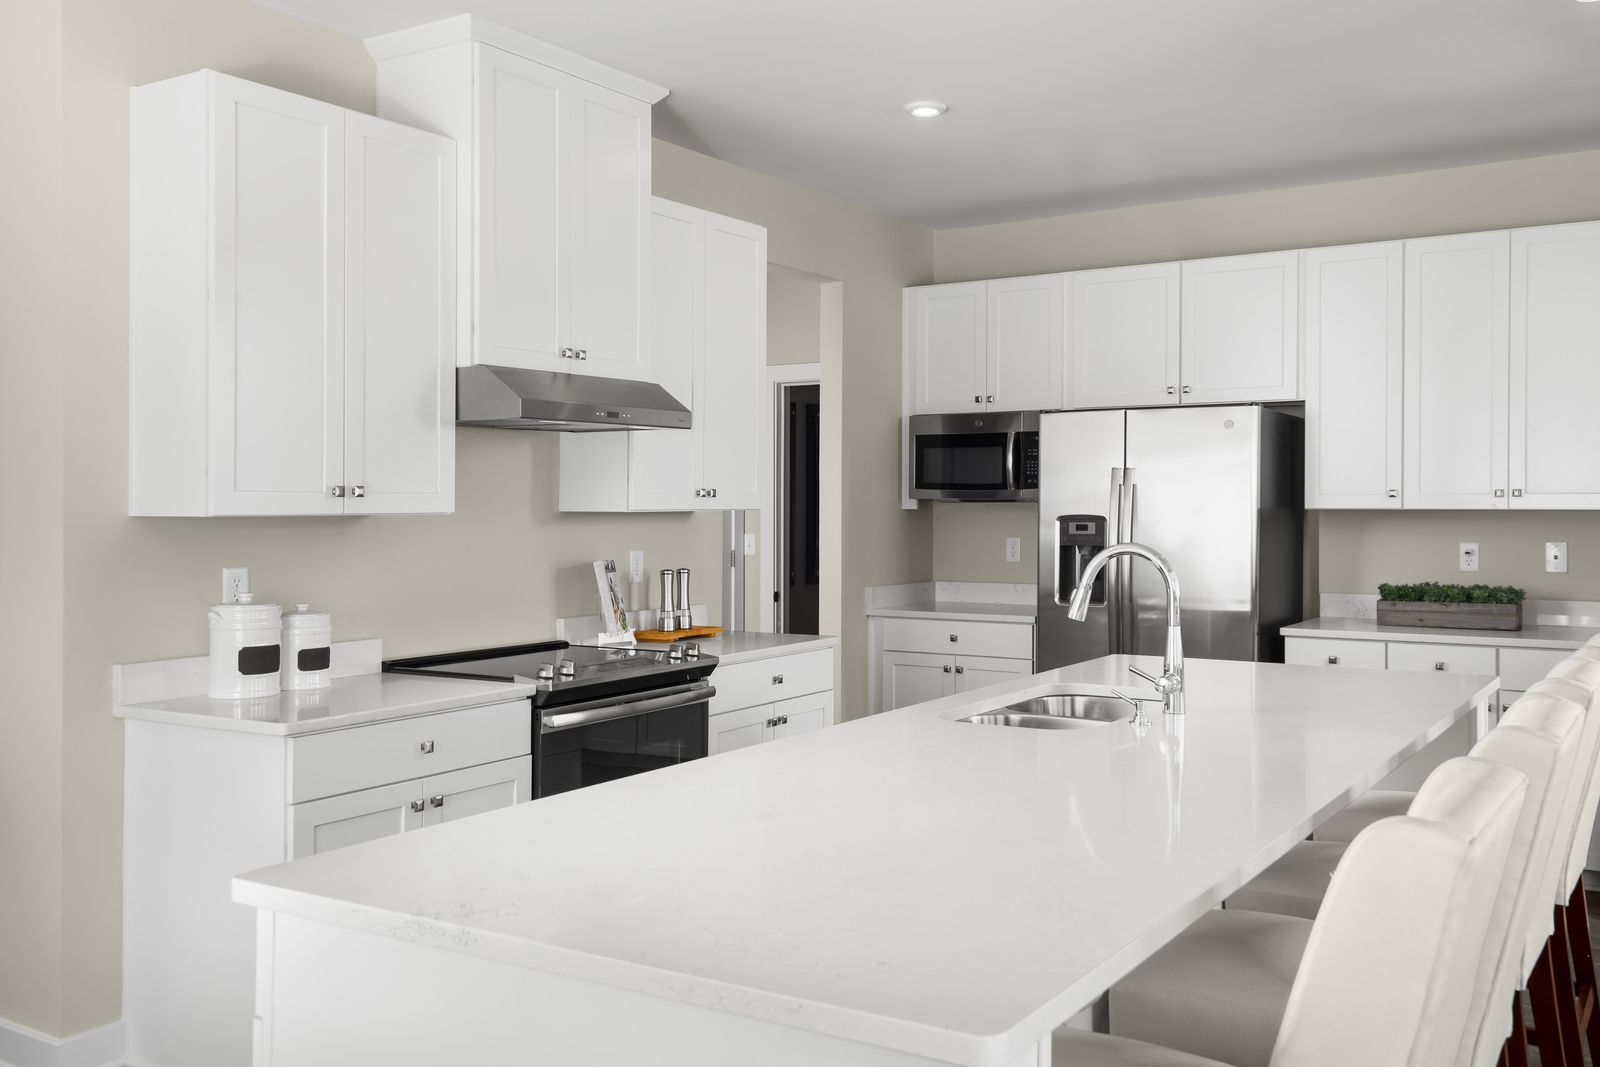 Kitchen featured in the Seneca at The Preserve By Ryan Homes in Richmond-Petersburg, VA